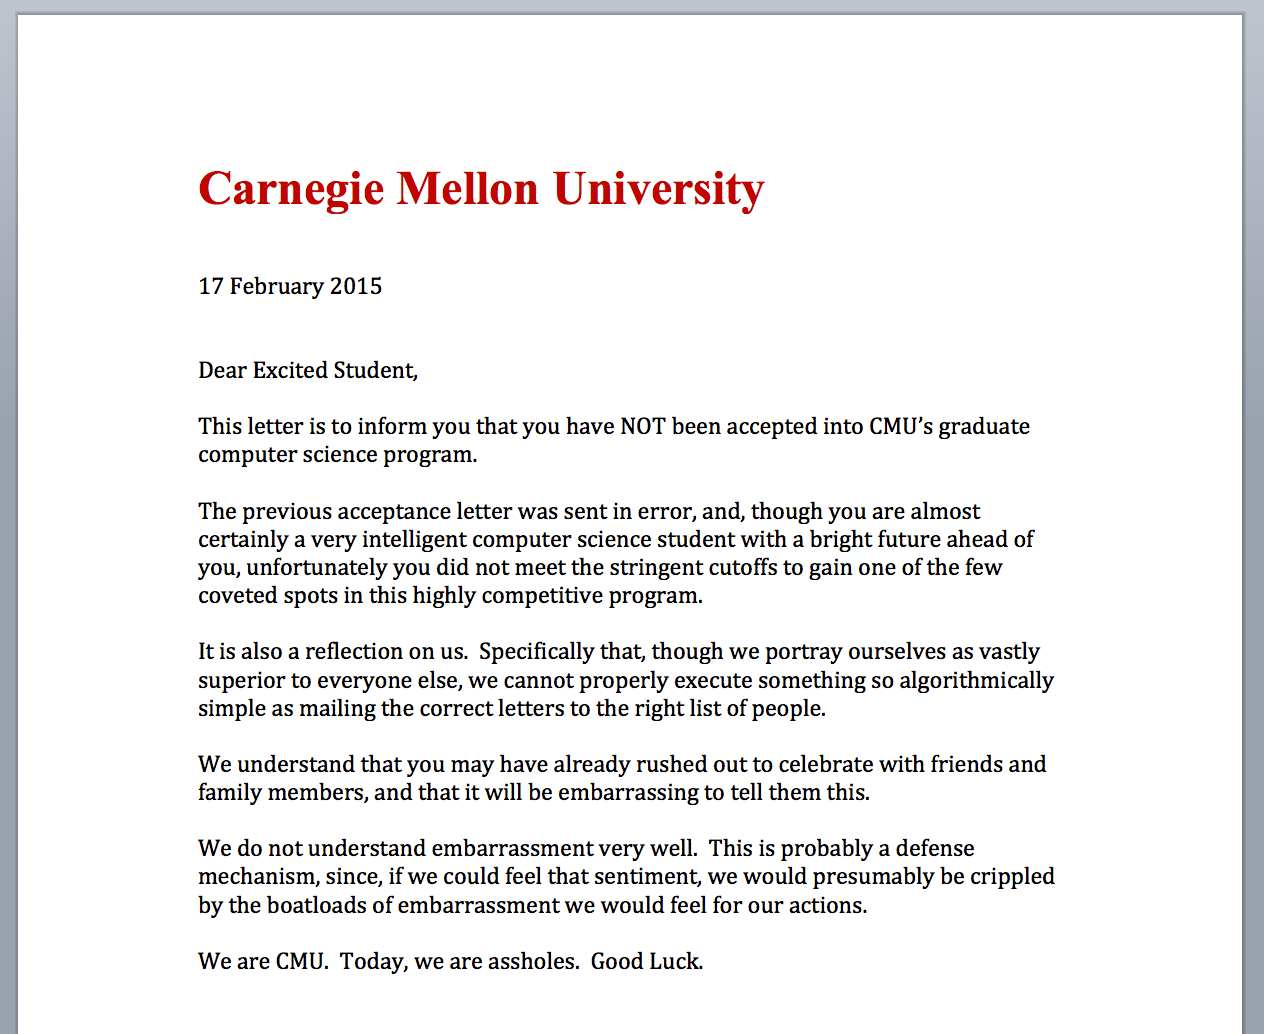 letter sent by cmu after mistakenly sending acceptance letters to rejected applicants